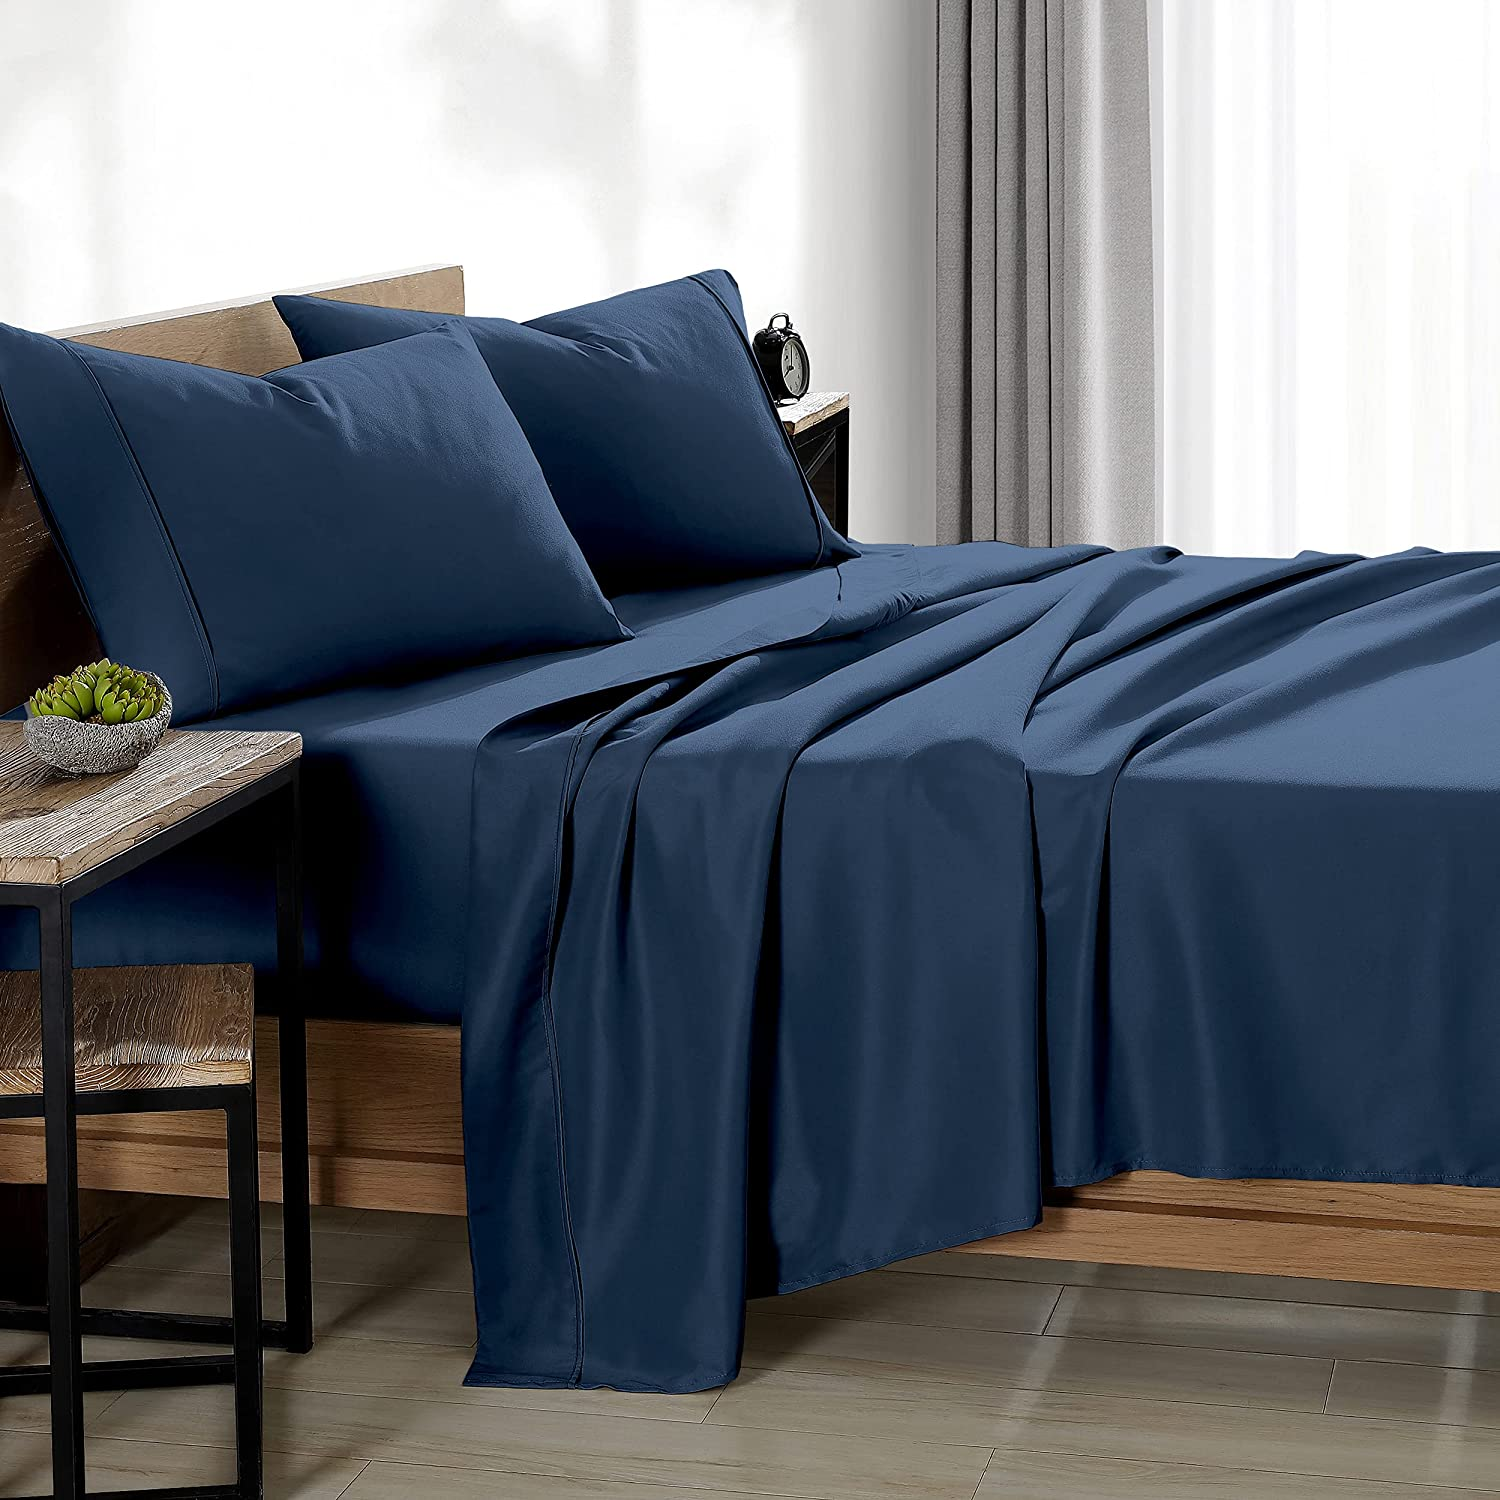 Bare Home Twin XL Sheet Set - College Dorm Size - Premium 1800 Ultra-Soft Microfiber Twin Extra Long Sheets - Double Brushed - Twin XL Sheets Set - Deep Pocket - Bed Sheets (Twin XL, Dark Blue): Home & Kitchen